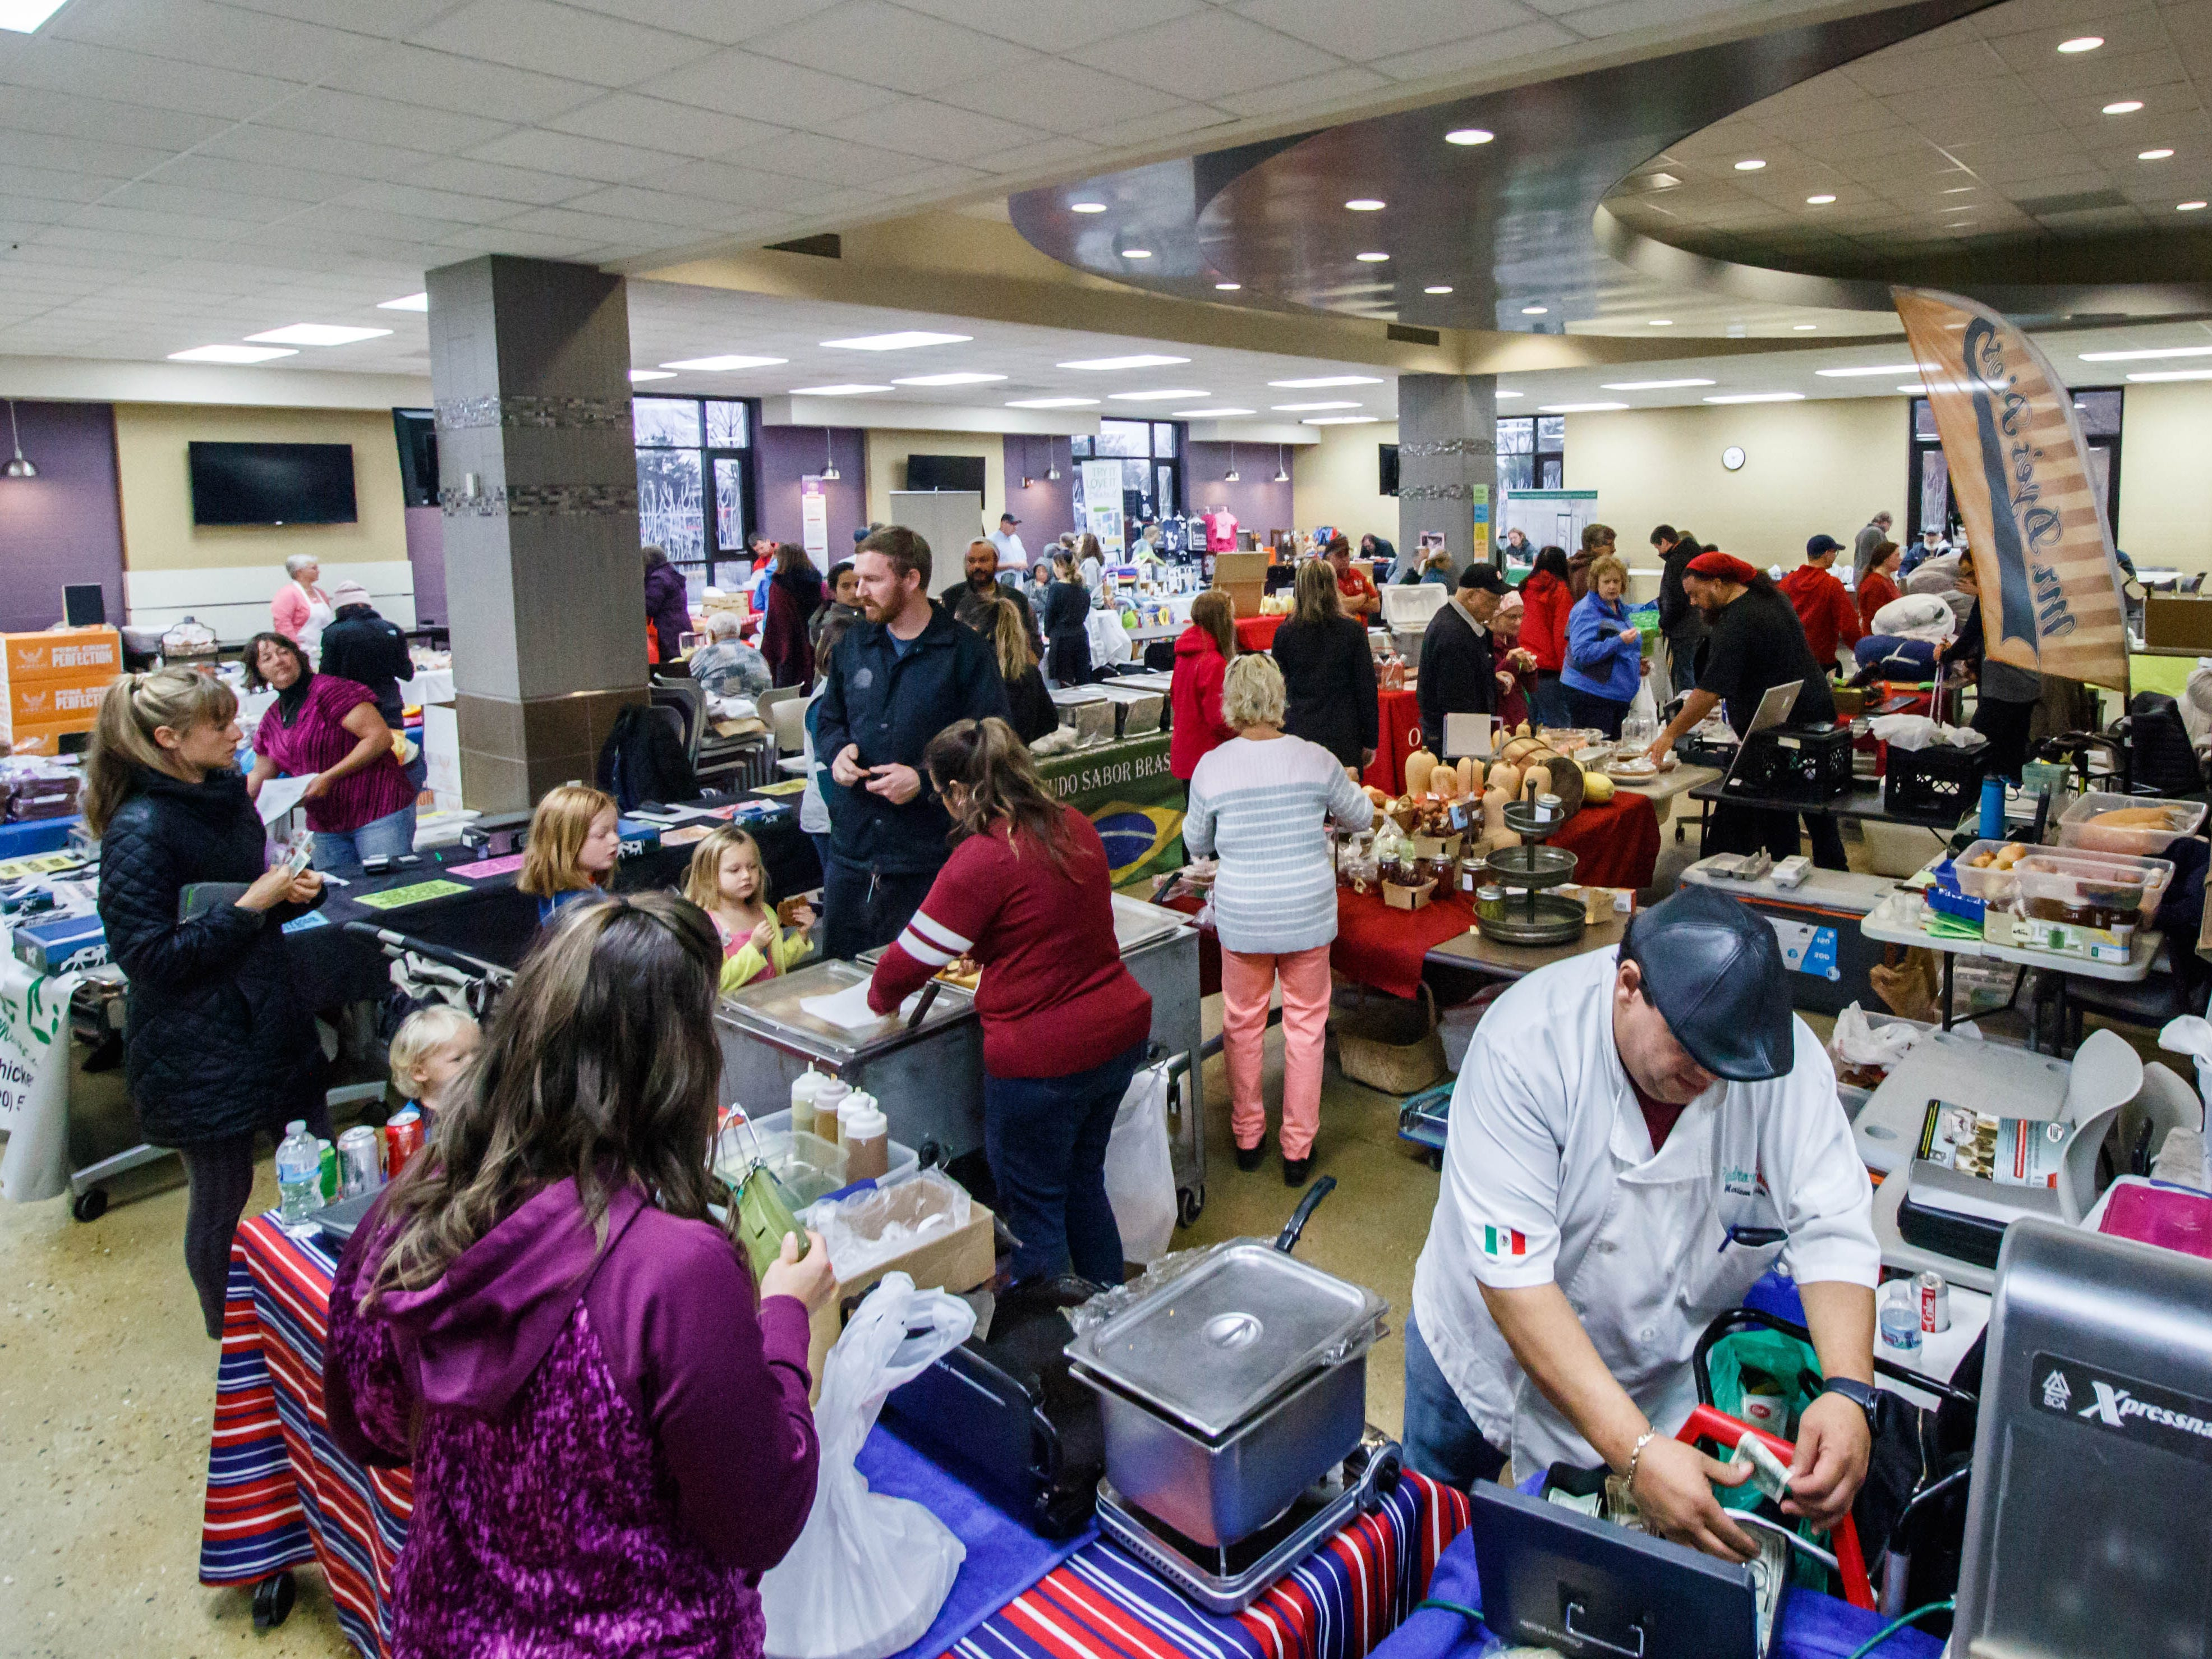 Customers shop for farm fresh products and handmade crafts during the Oconomowoc Winter Farmers Market at the high school on Sunday, Nov. 4, 2018. The winter market is open from 9:30 a.m. to 1:00 p.m. every Sunday through March 31st.